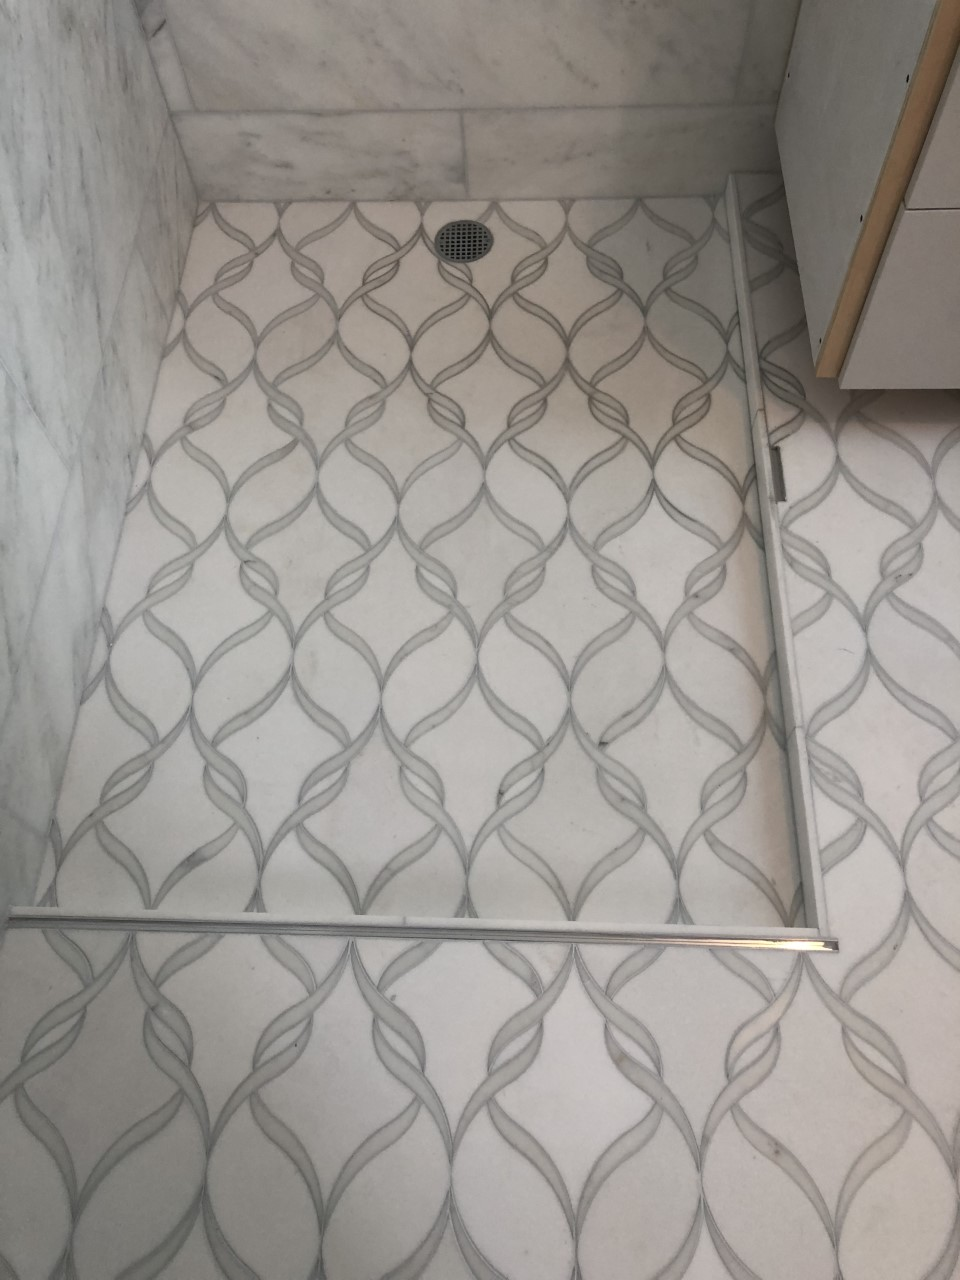 Palace Marble and Tile